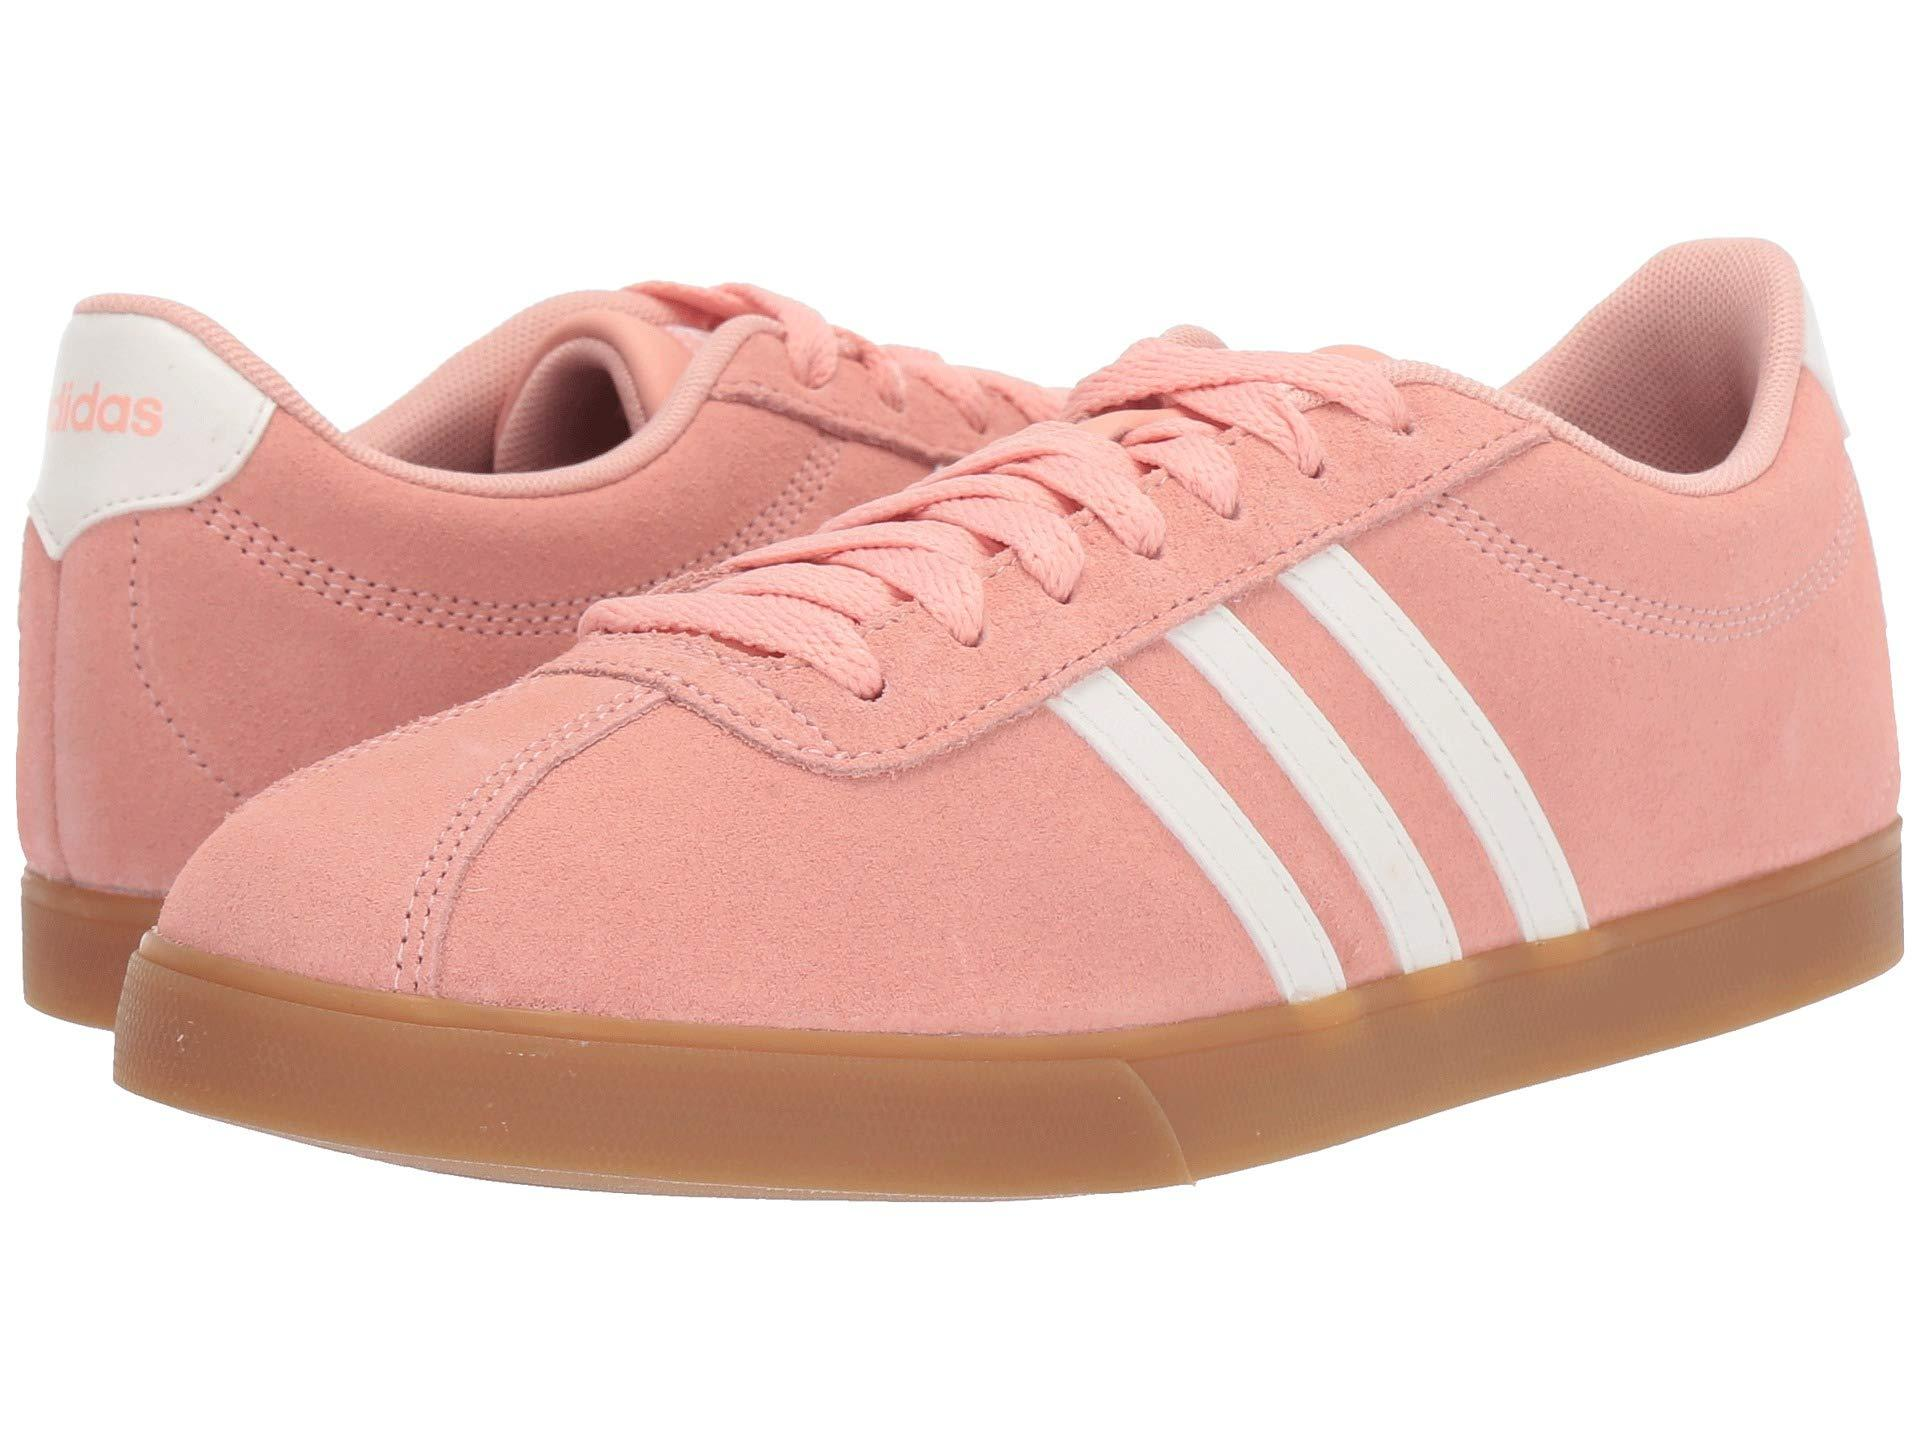 Lyst Adidas Courtset in Pink